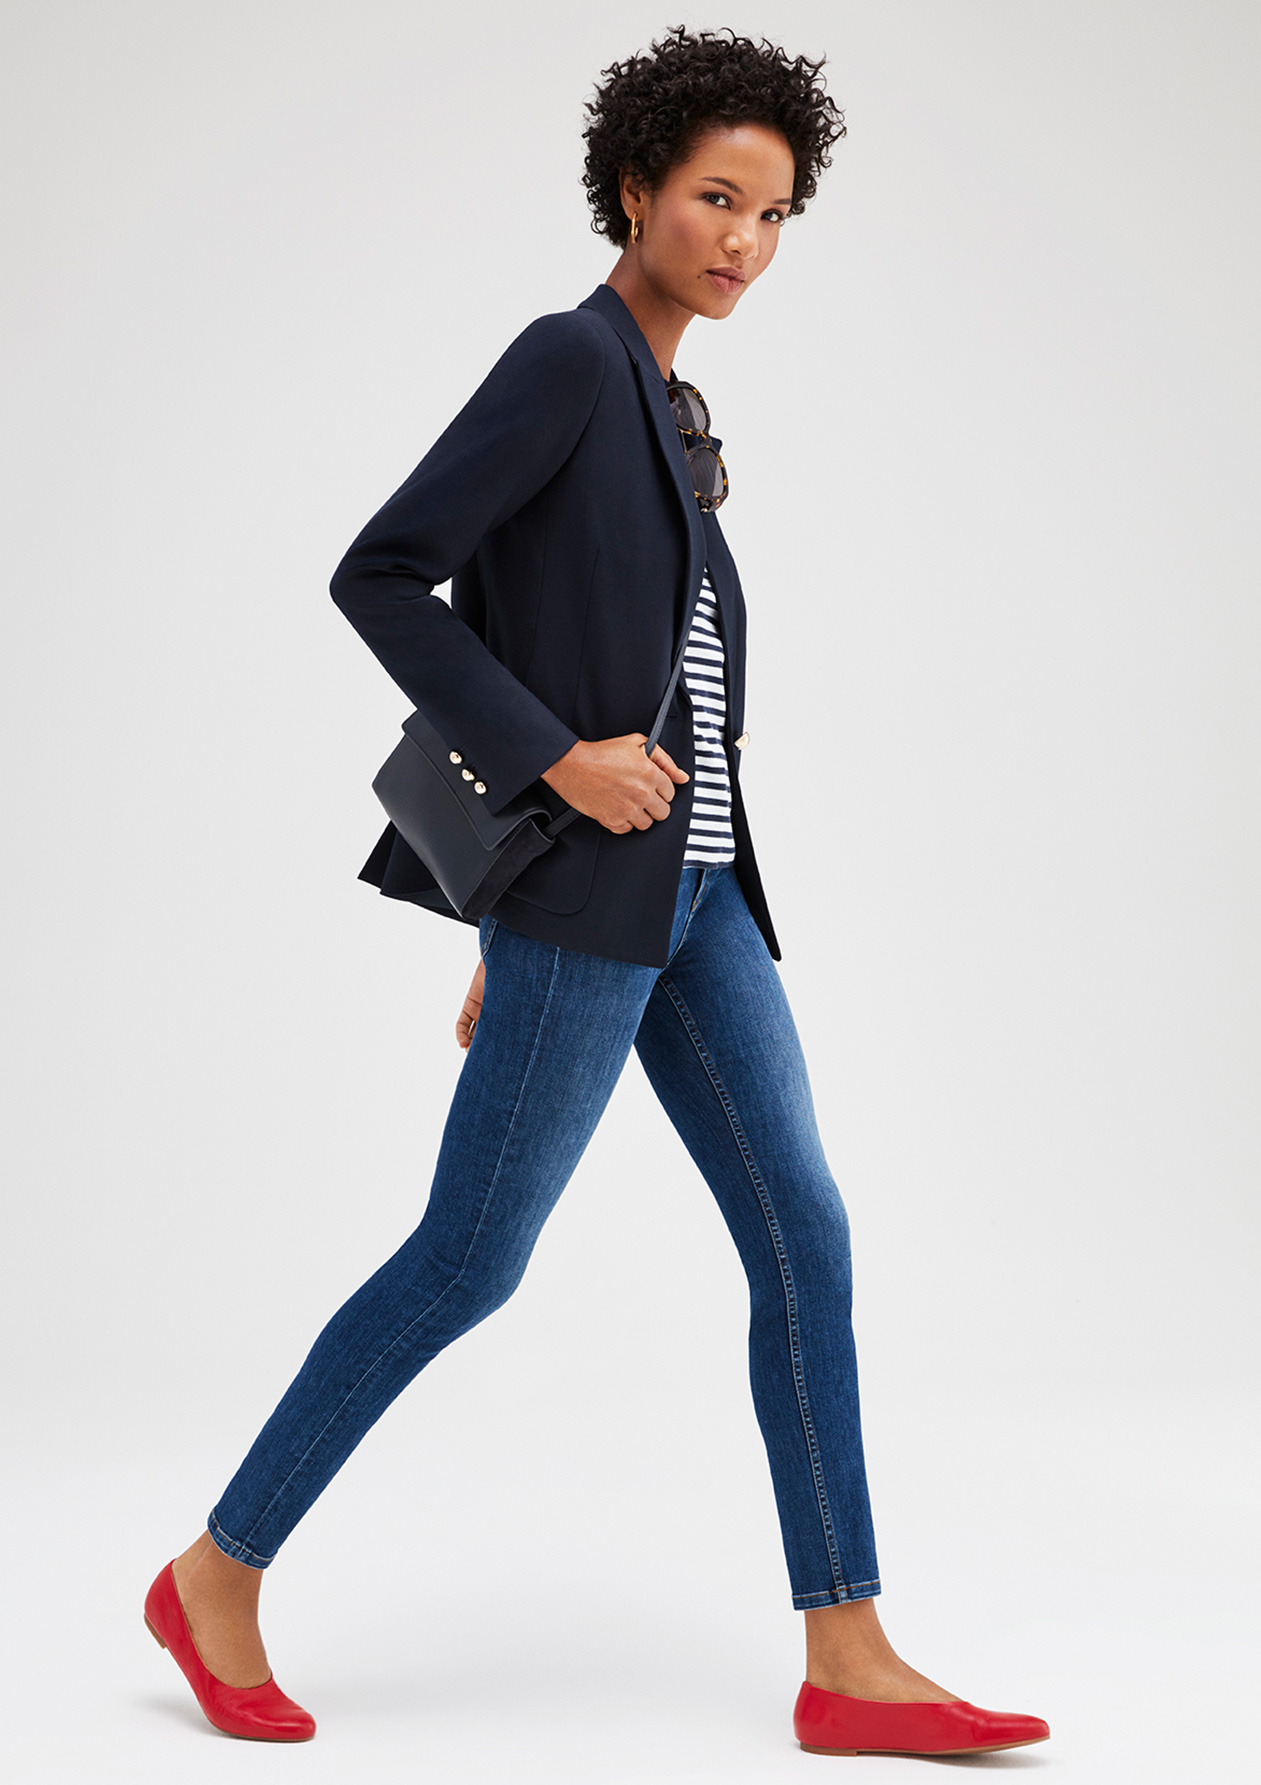 Nail relaxed style, model wears a casual outfit consisting of a classic navy blazer, striped top, blue jeans and red flats.